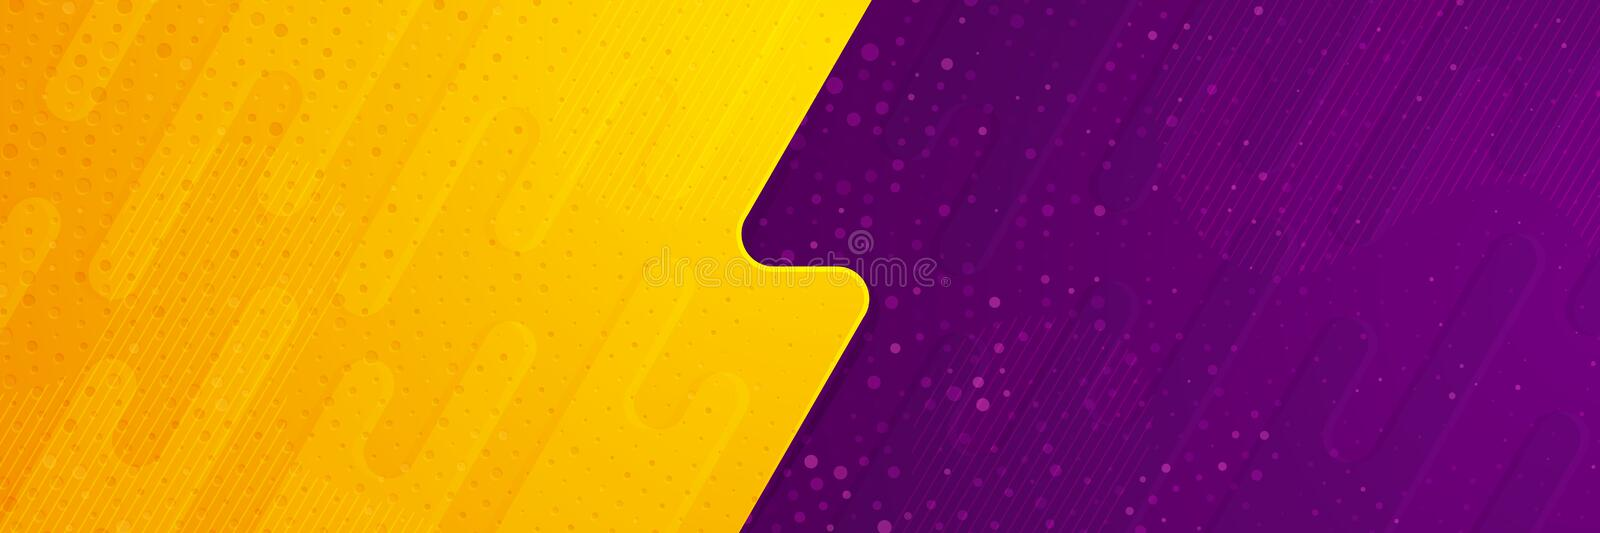 Abstract textured vector background with orange and purple color. can us for banner, posters, cover, promotional advertisement, stock illustration